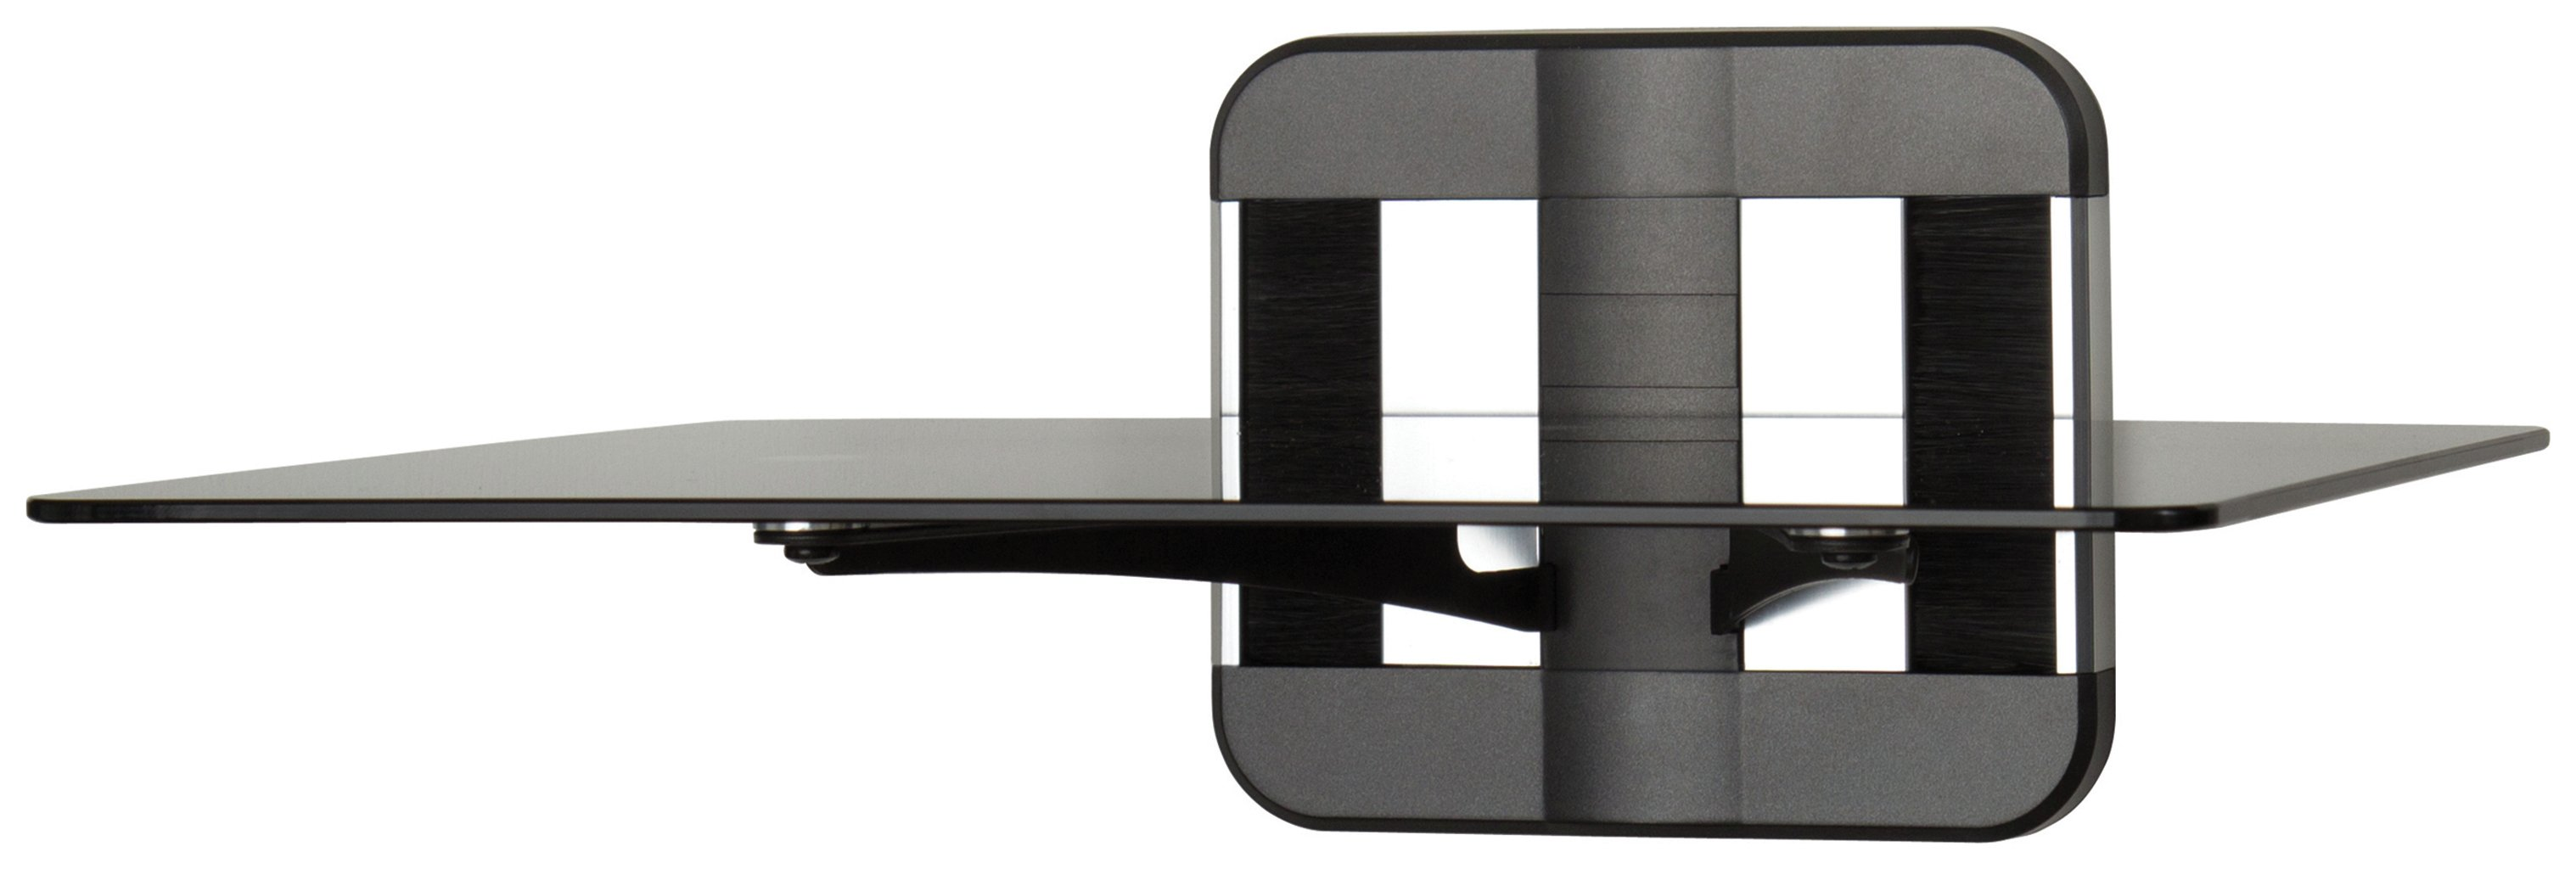 Image of AVF Anywall TV Mount and Accessory Shelf.